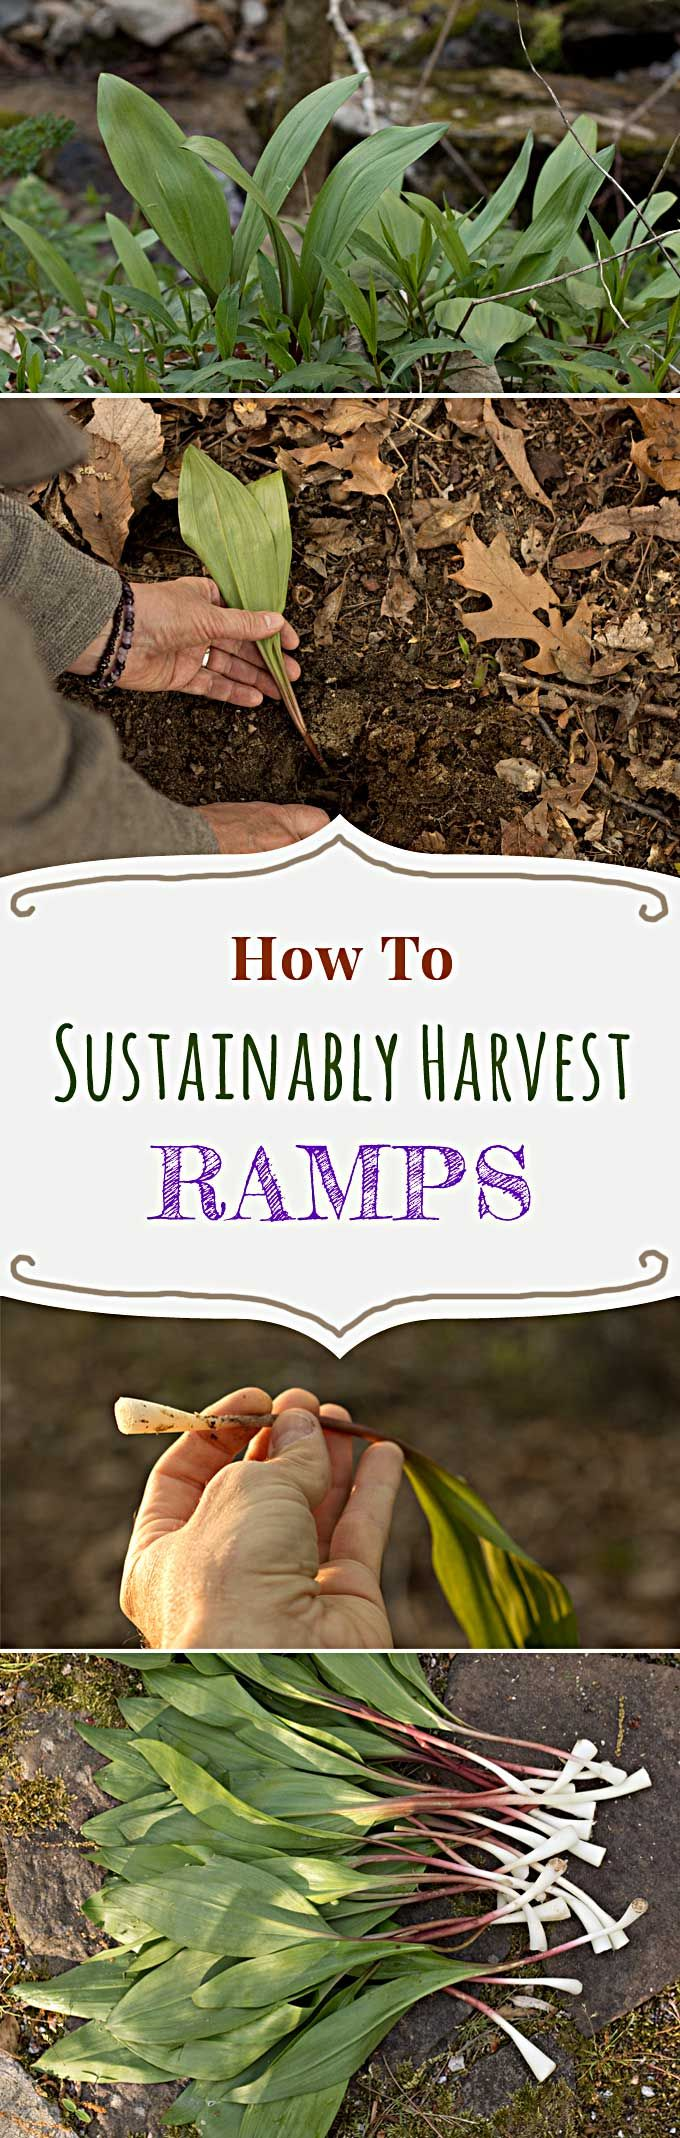 how to find wild ramps